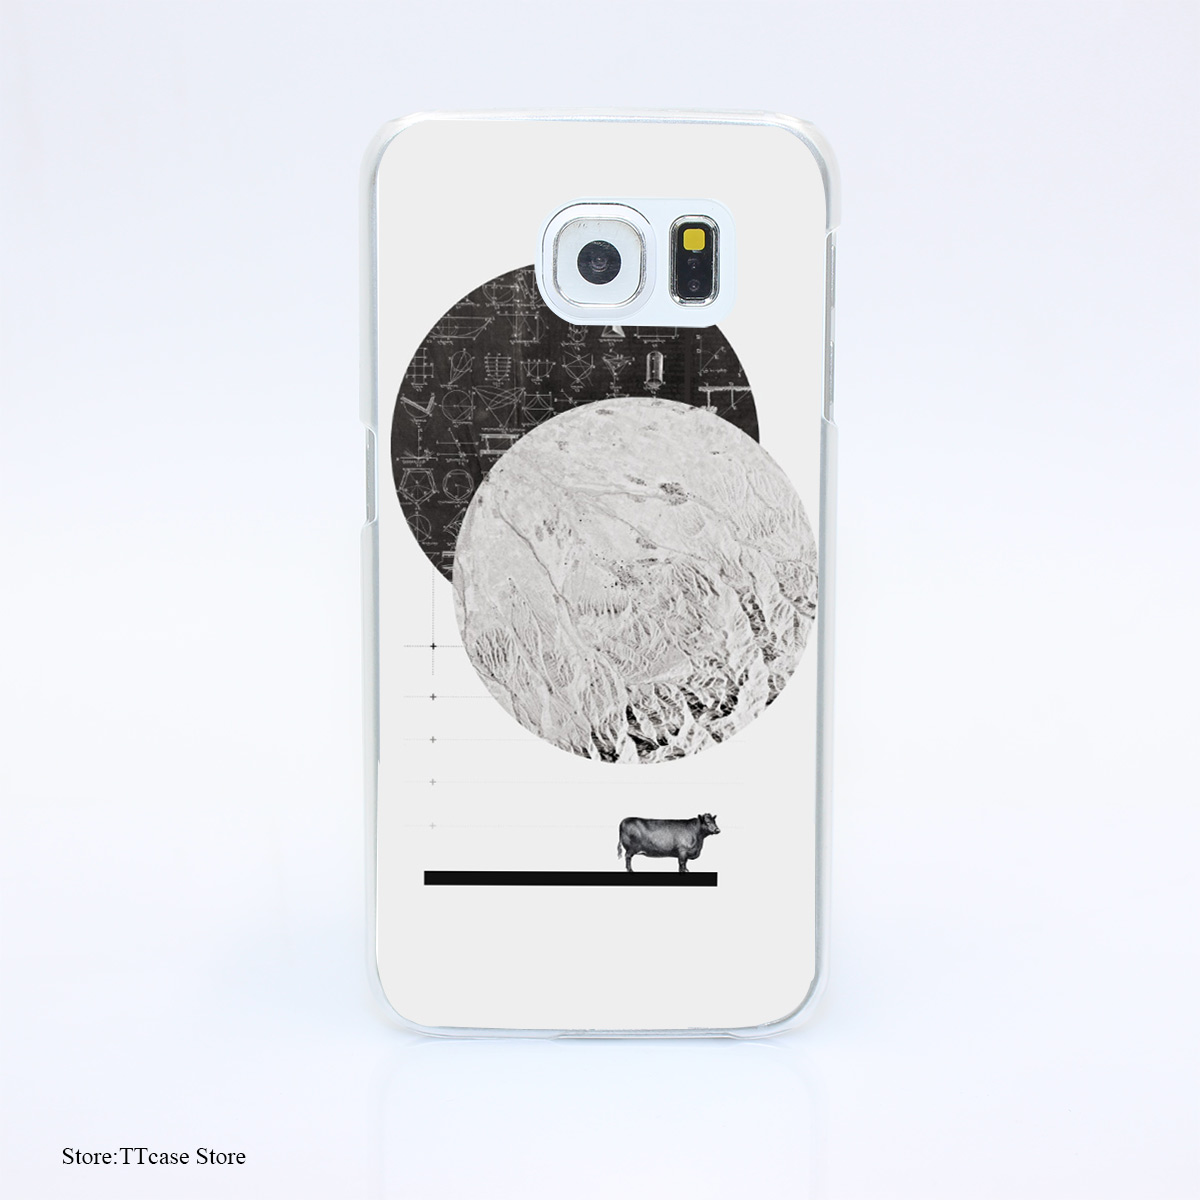 525G font b Calculating b font a Jump Over The Moon Print Hard Transparent Case Cover